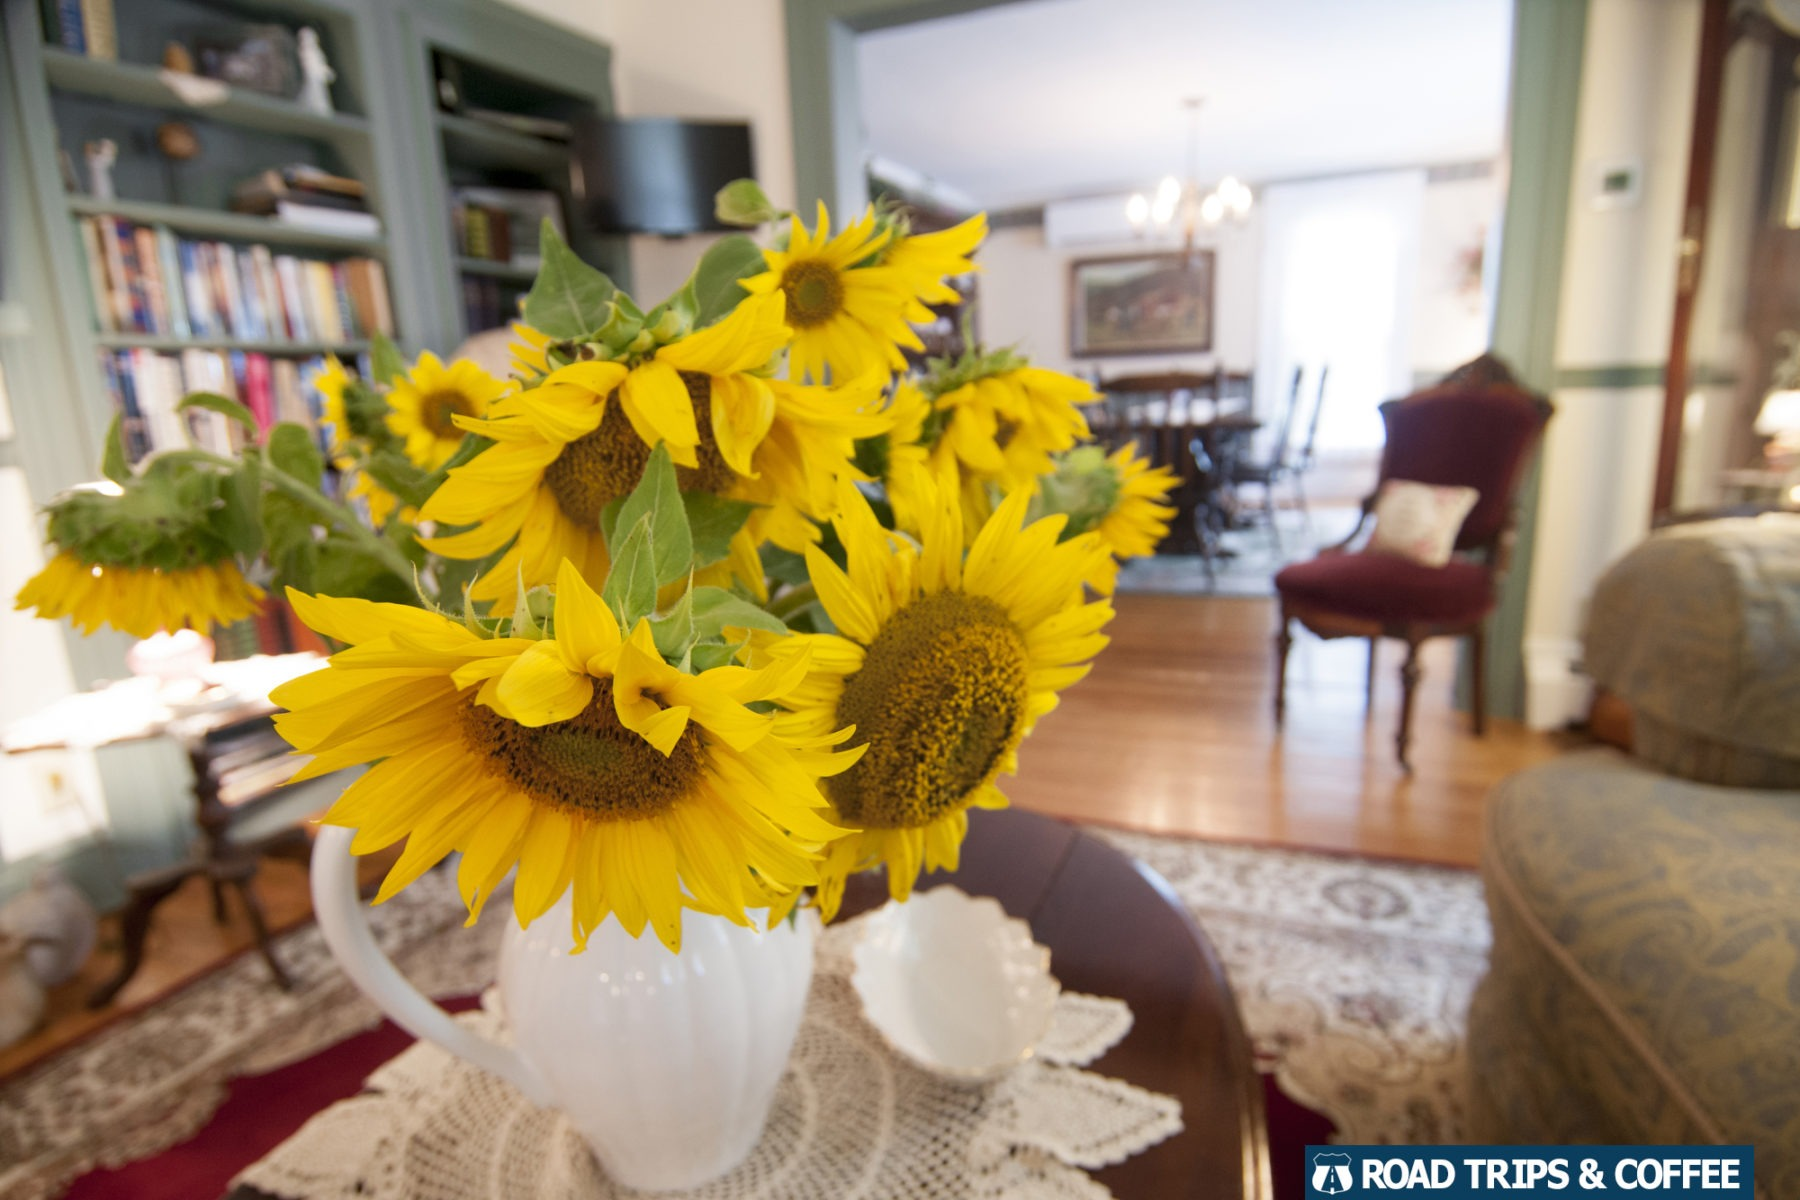 Beautiful sunflowers decorate the table at the Blushing Rose Bed & Breakfast in Hammondsport, New York